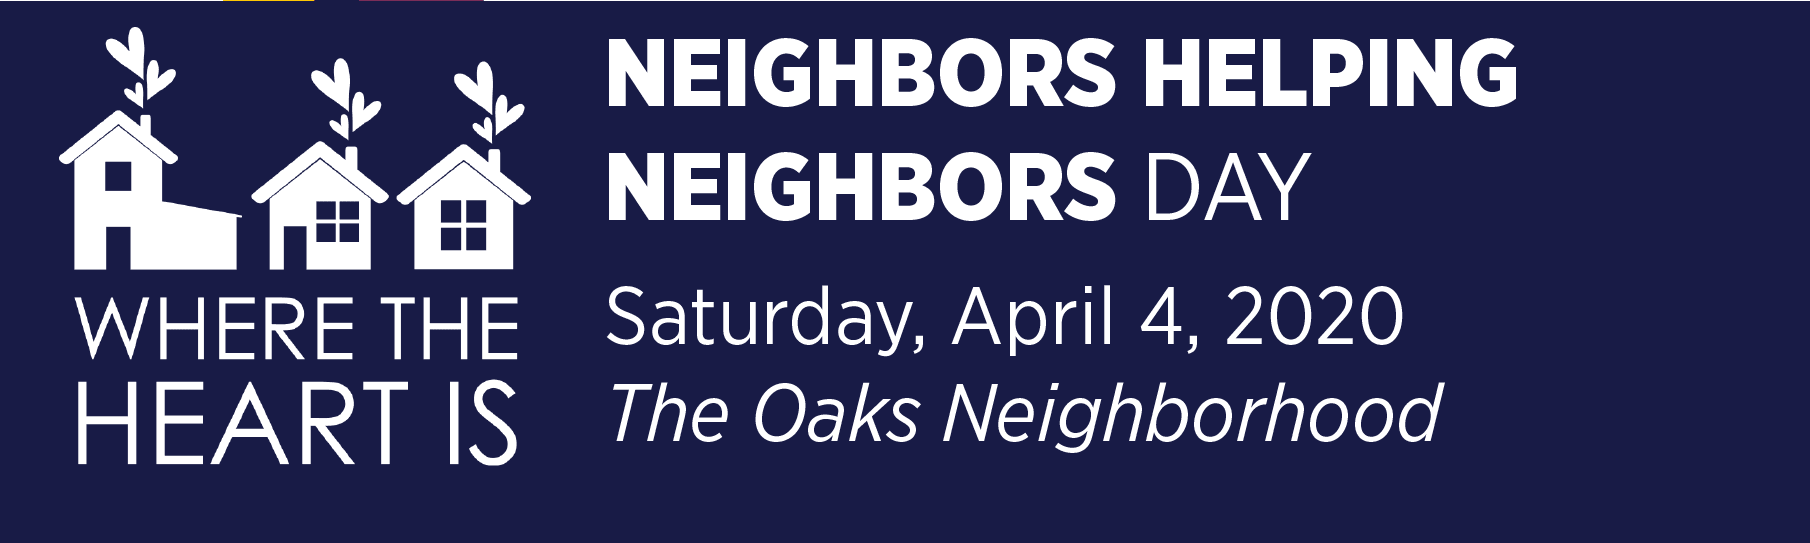 Where the heart is: neighbors helping neighbors day, Saturday, April 4, 2020, The Oaks Neighborhood